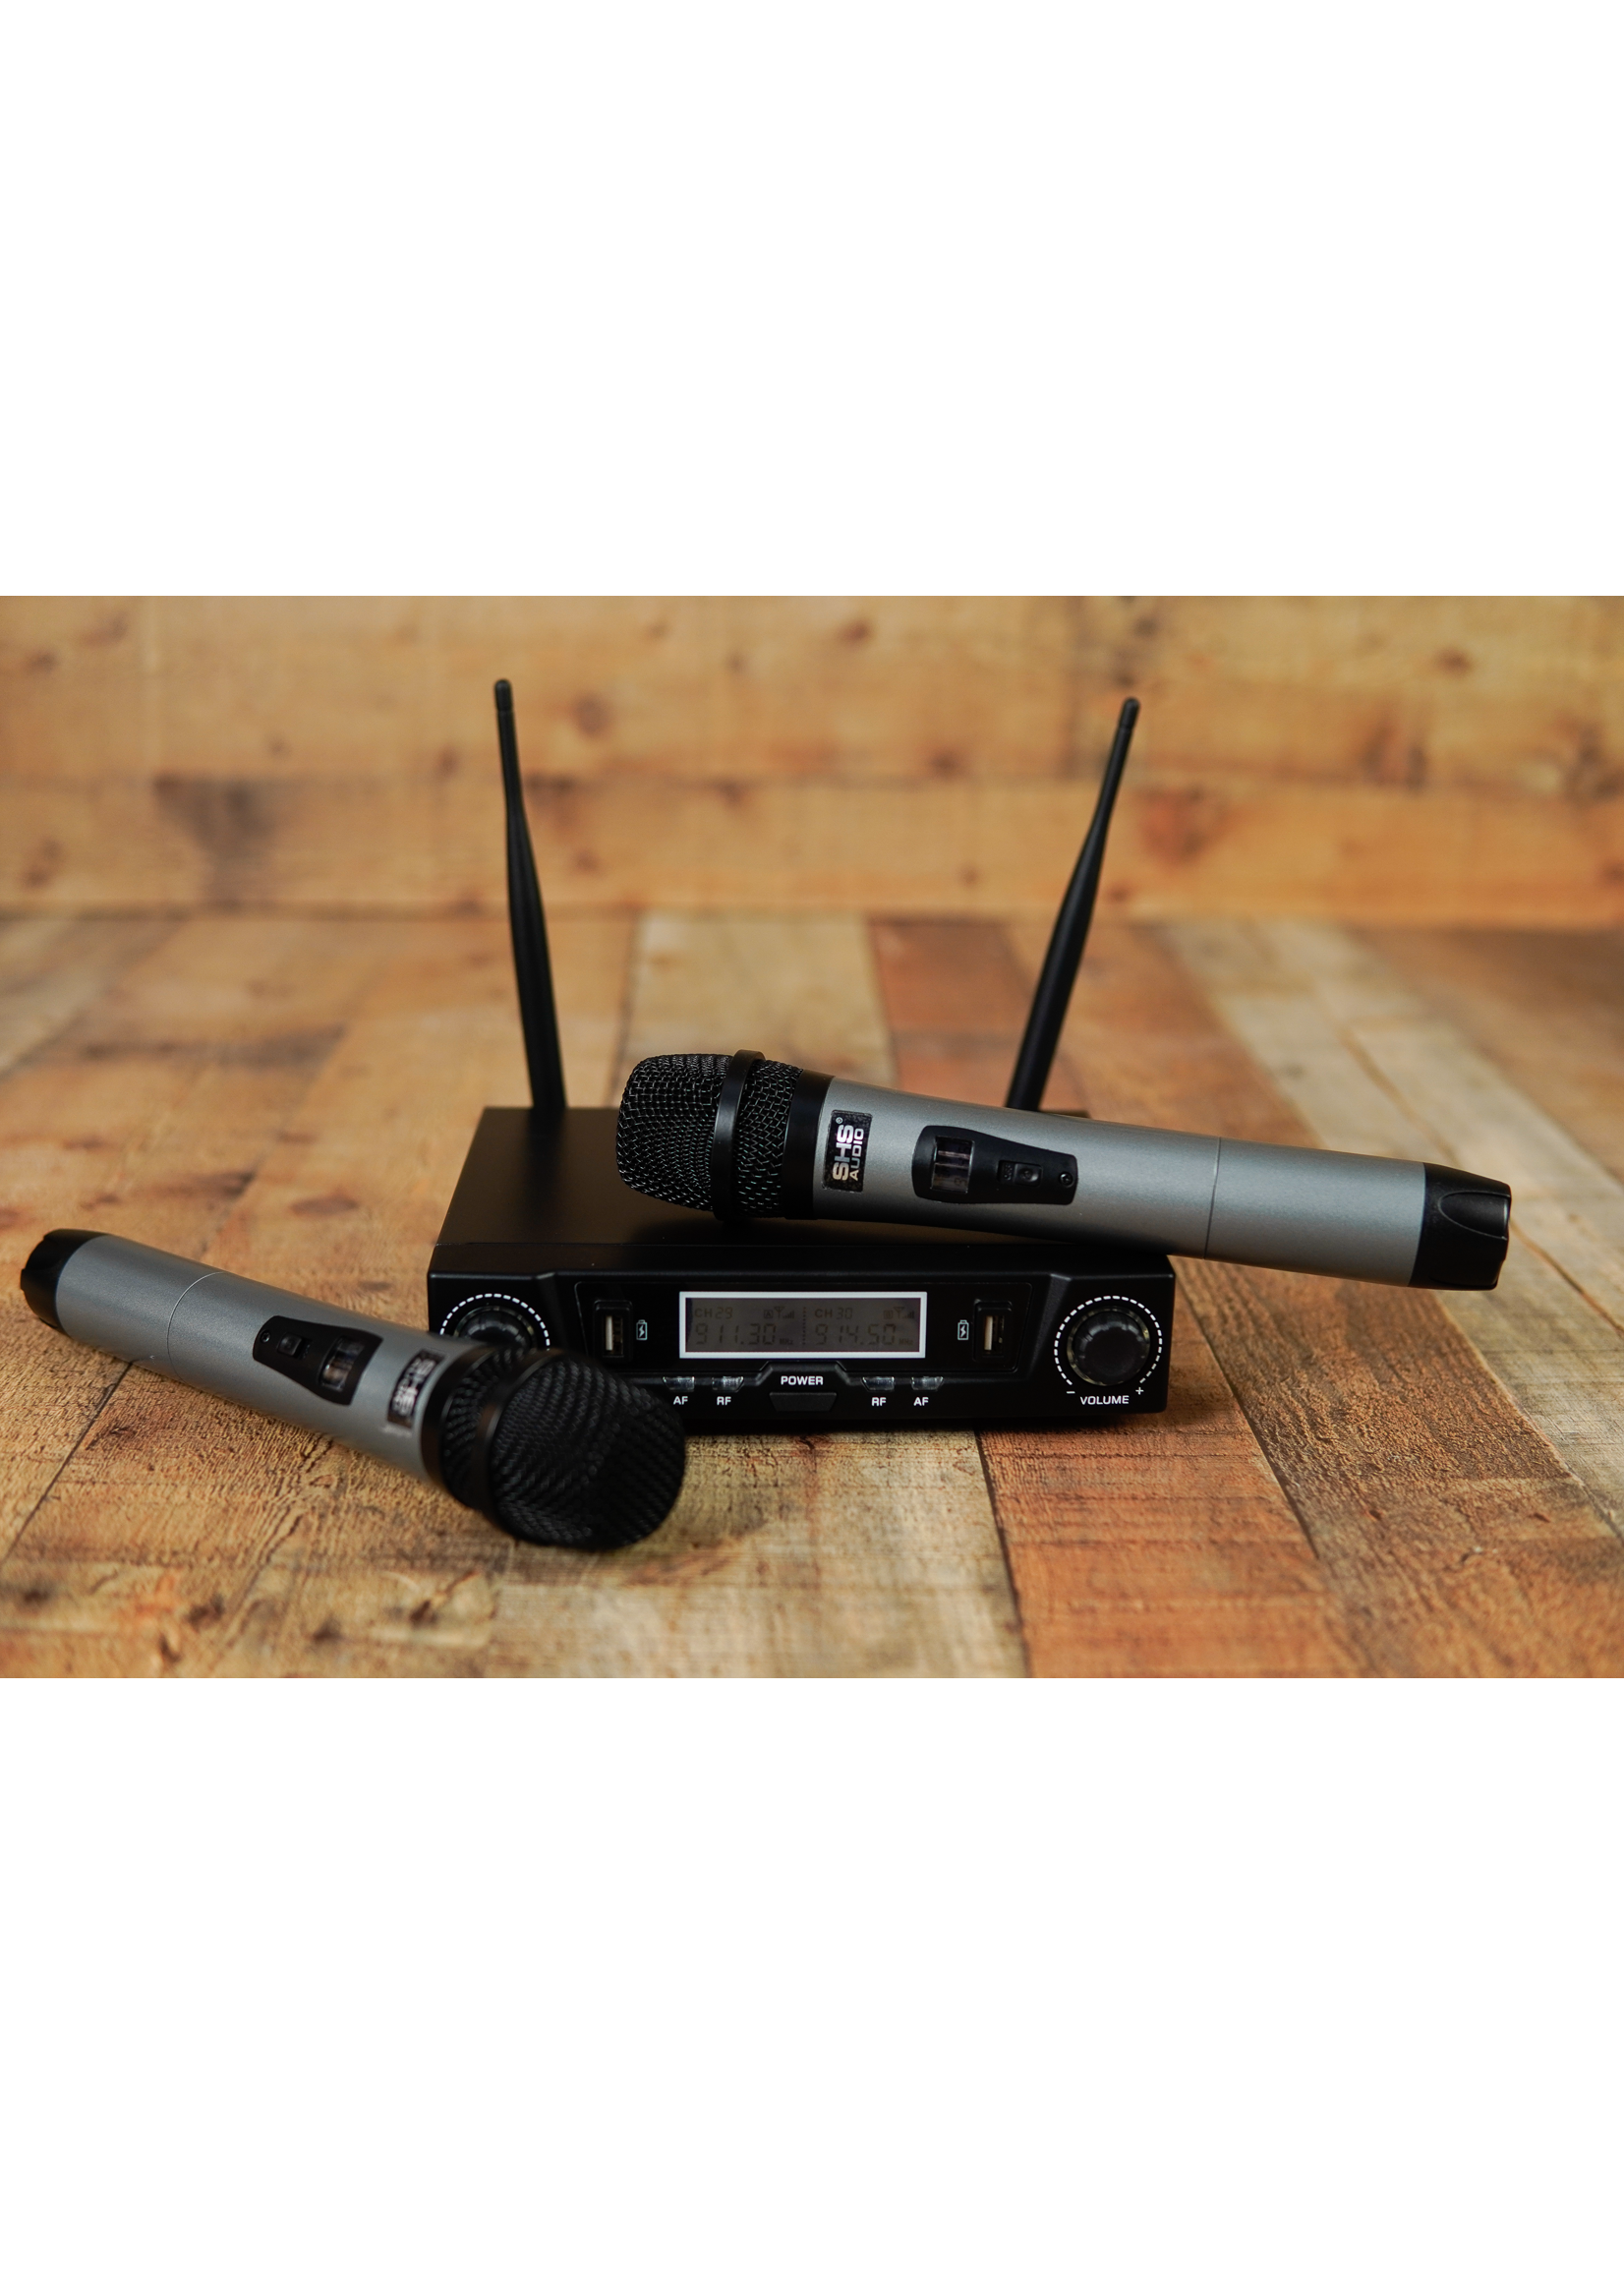 shs SHS Audio Swuh-500 Dual Hand Held Wireless Microphone System